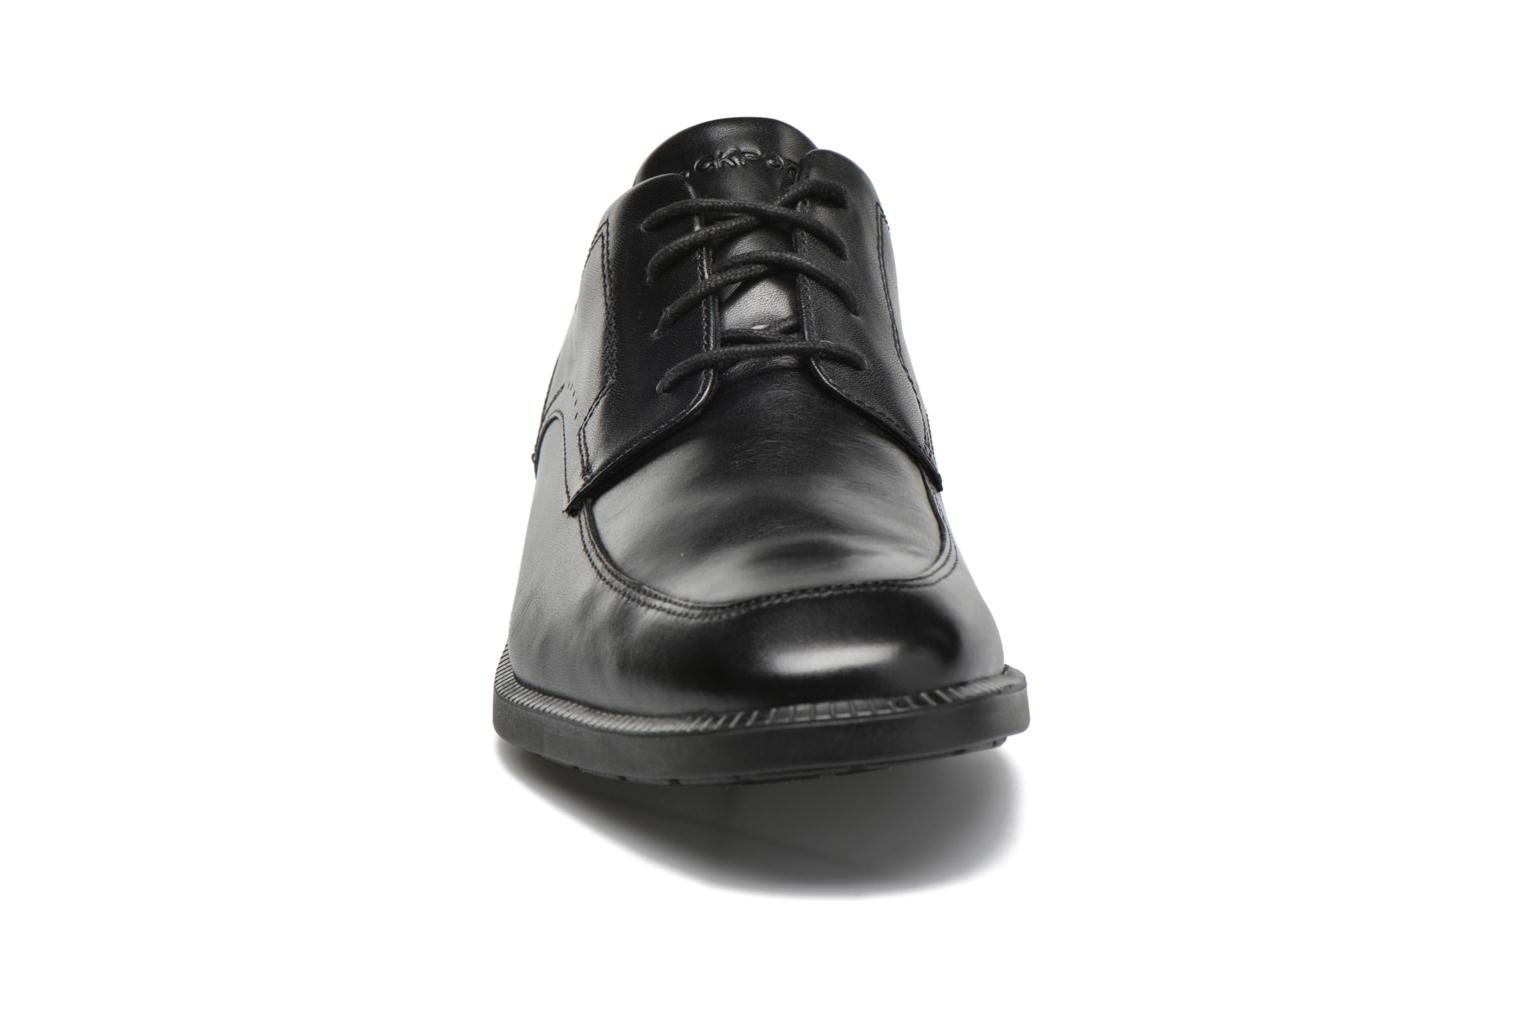 DP Modern Apron Toe Black